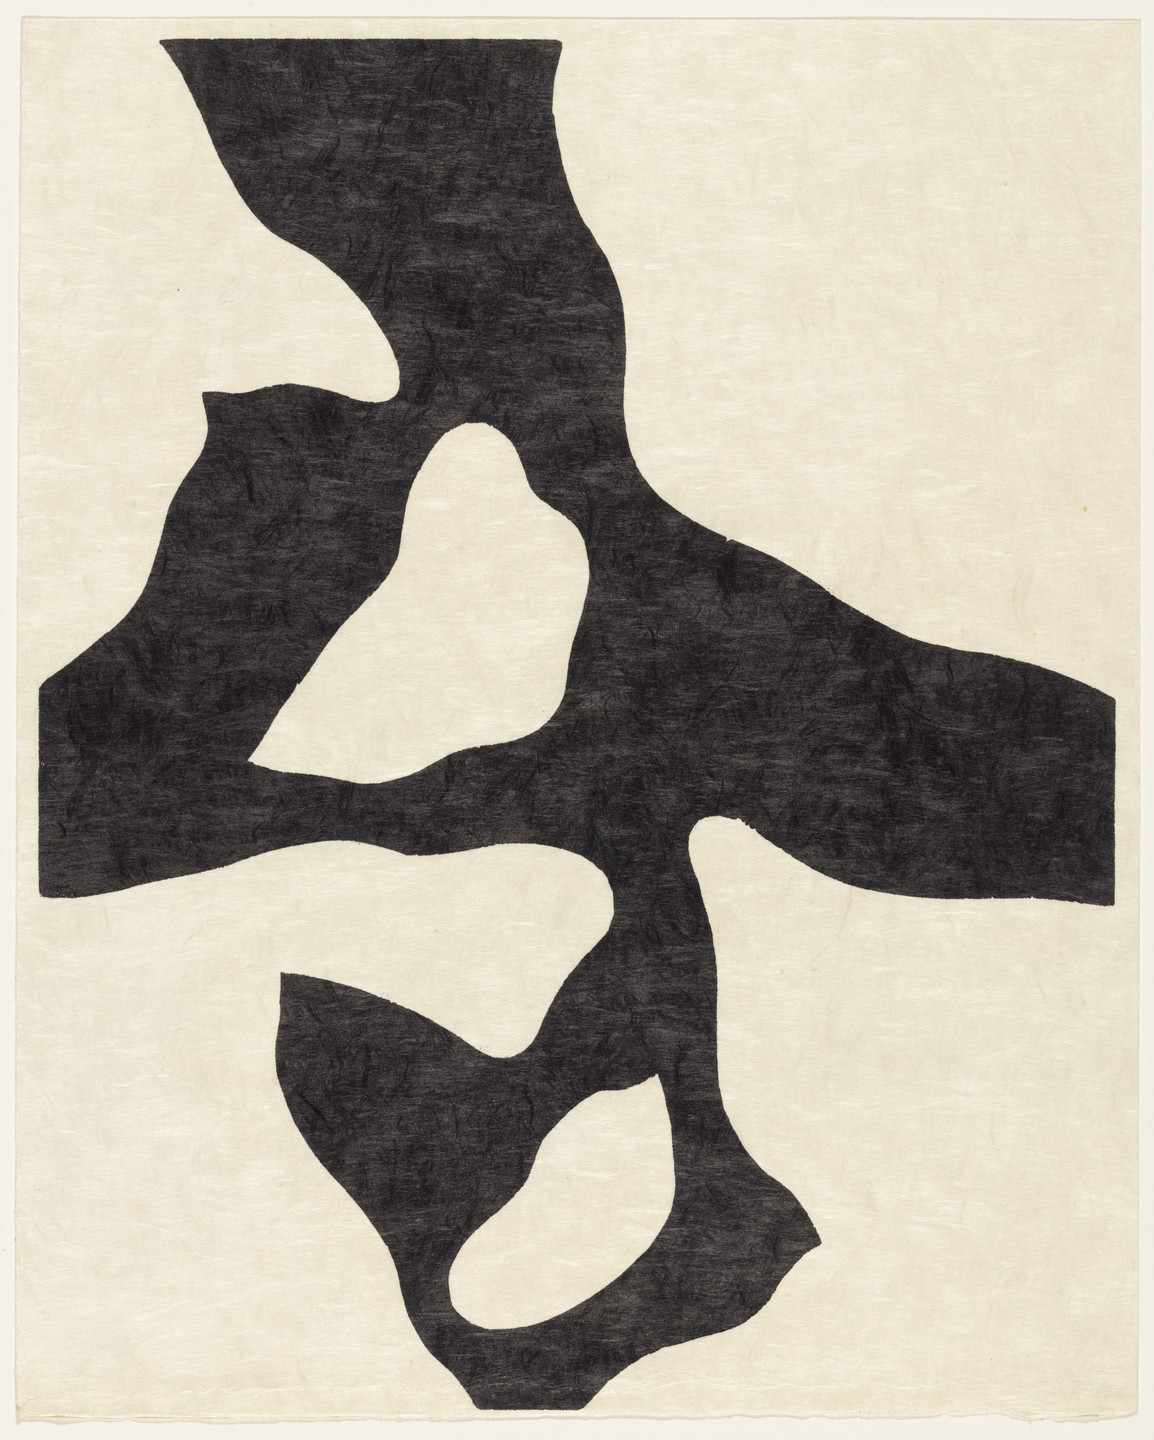 Jean (Hans) Arp. Flower Figure, Fall (plate, supplementary suite) from Dreams and Projects. 1951–52, published 1952